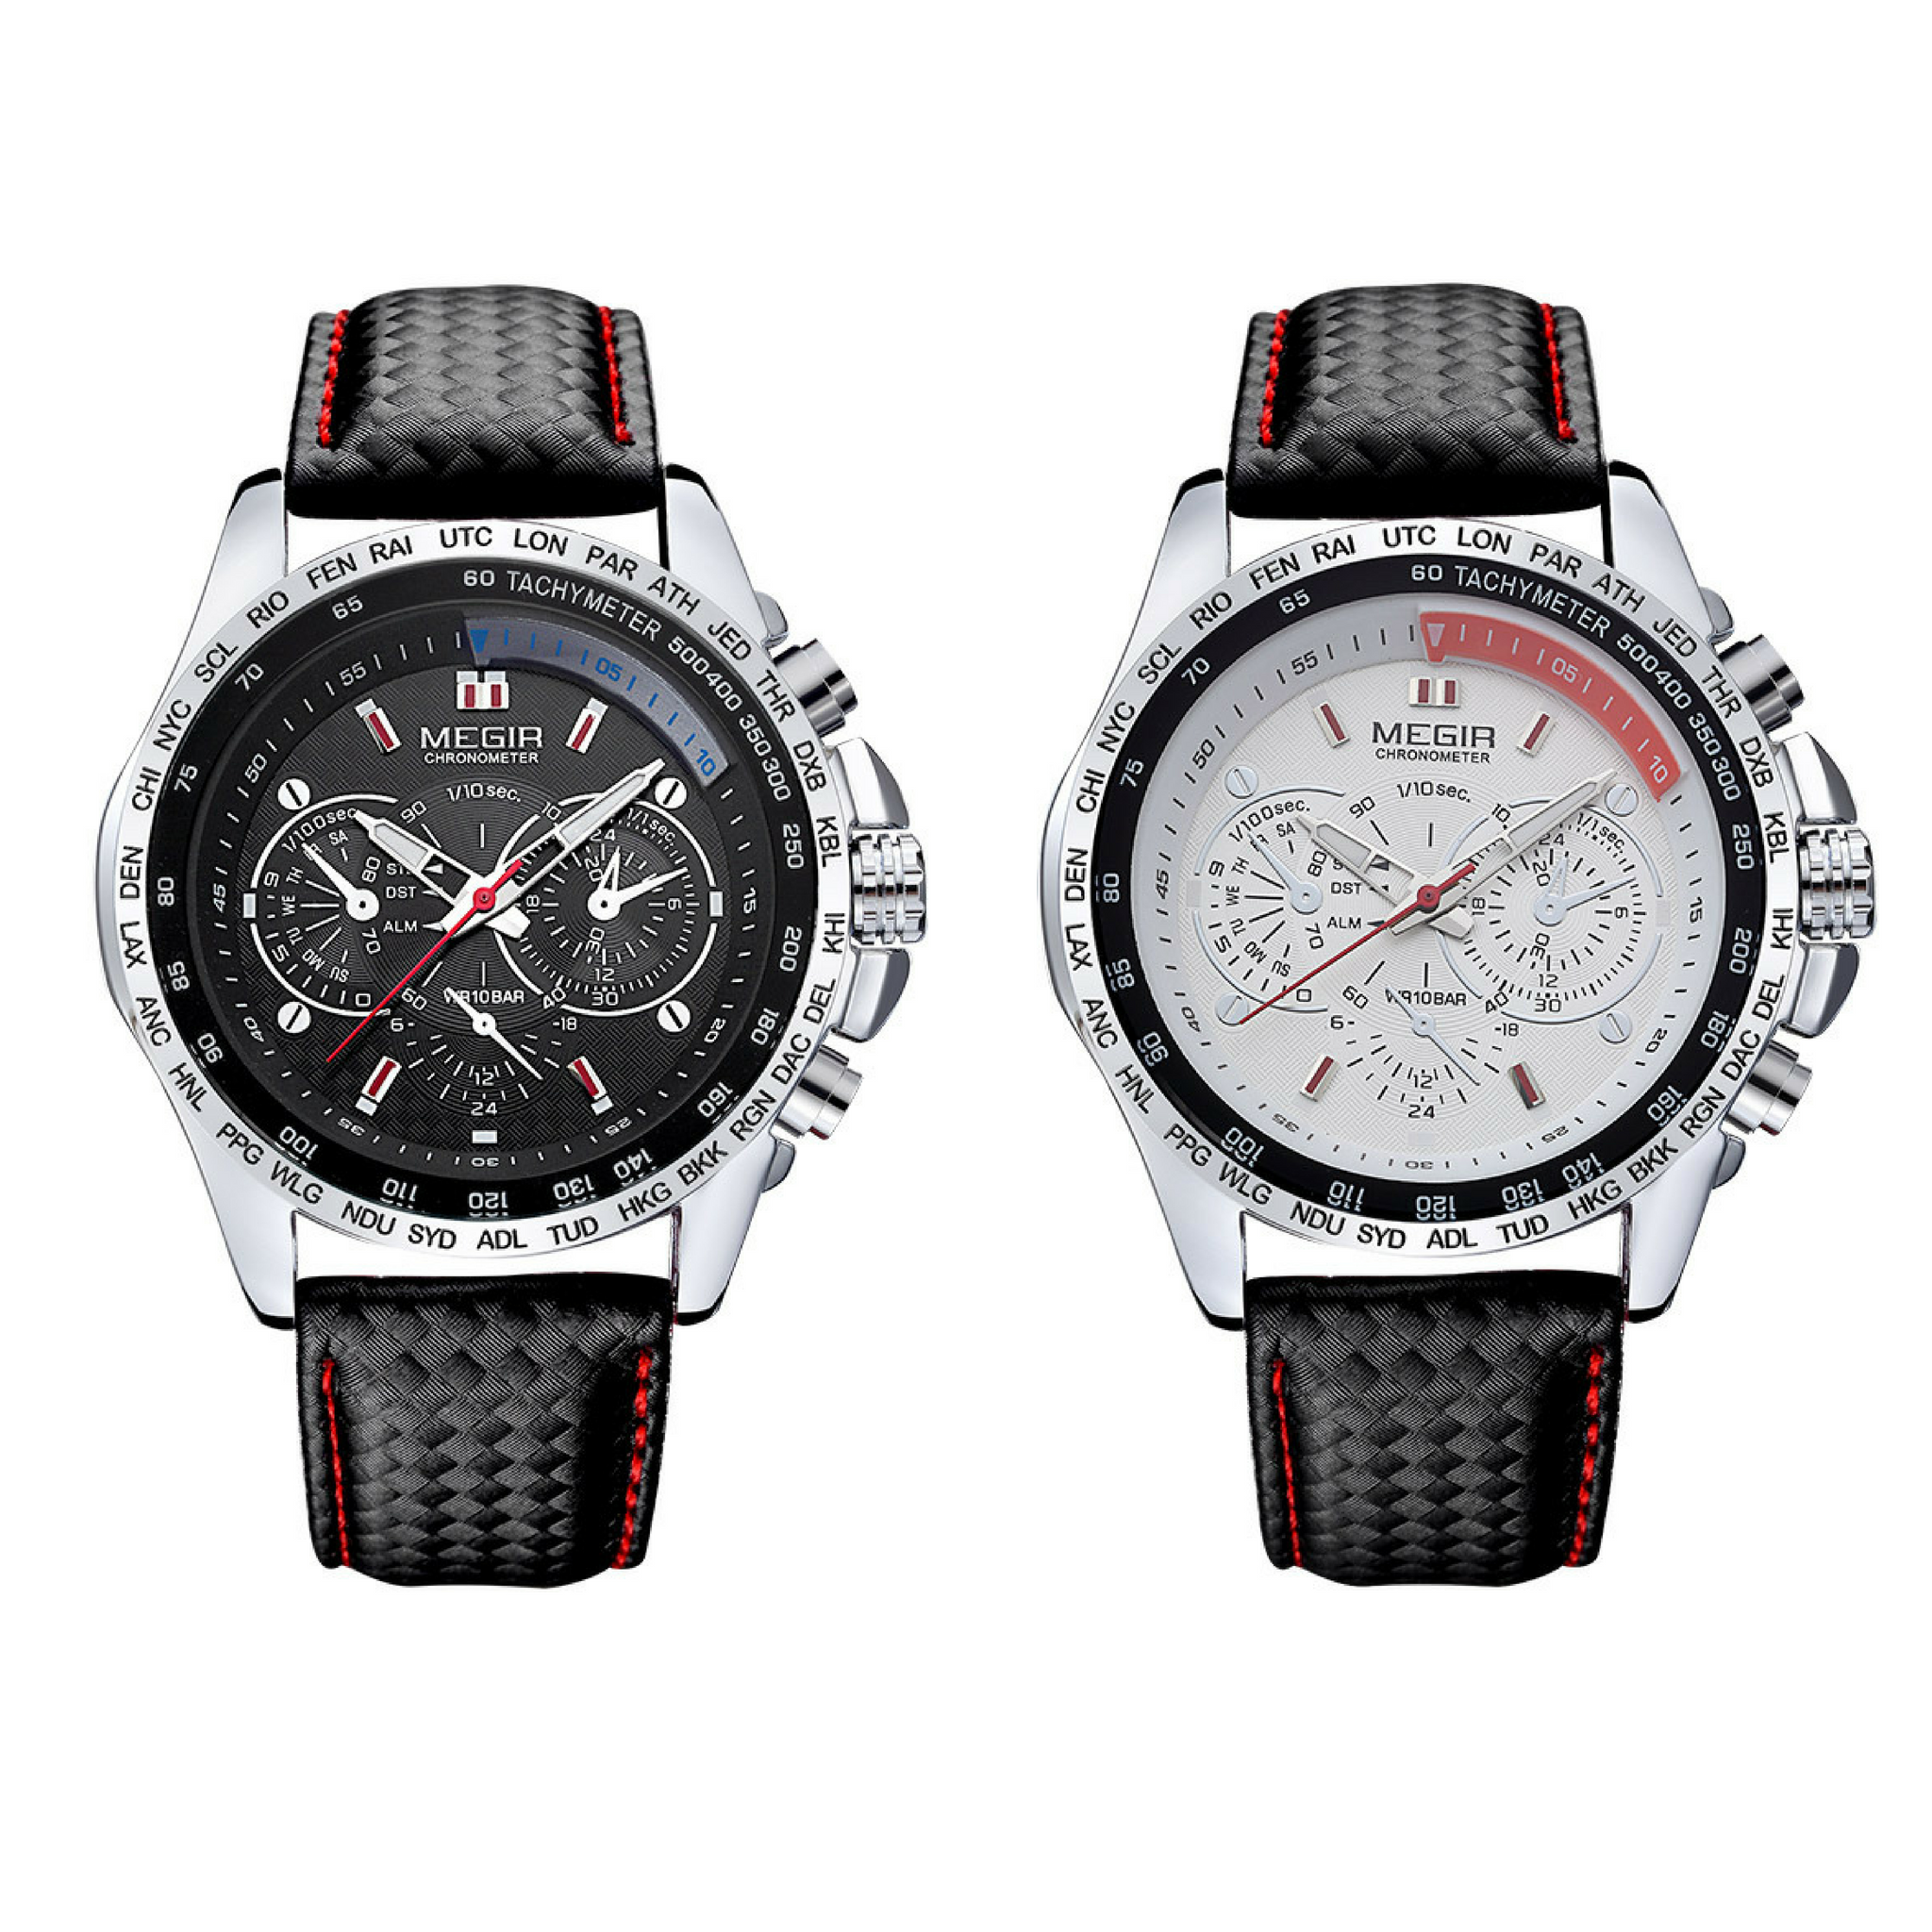 Men's Premium Casual Watch - BUY 1 GET 1 FREE